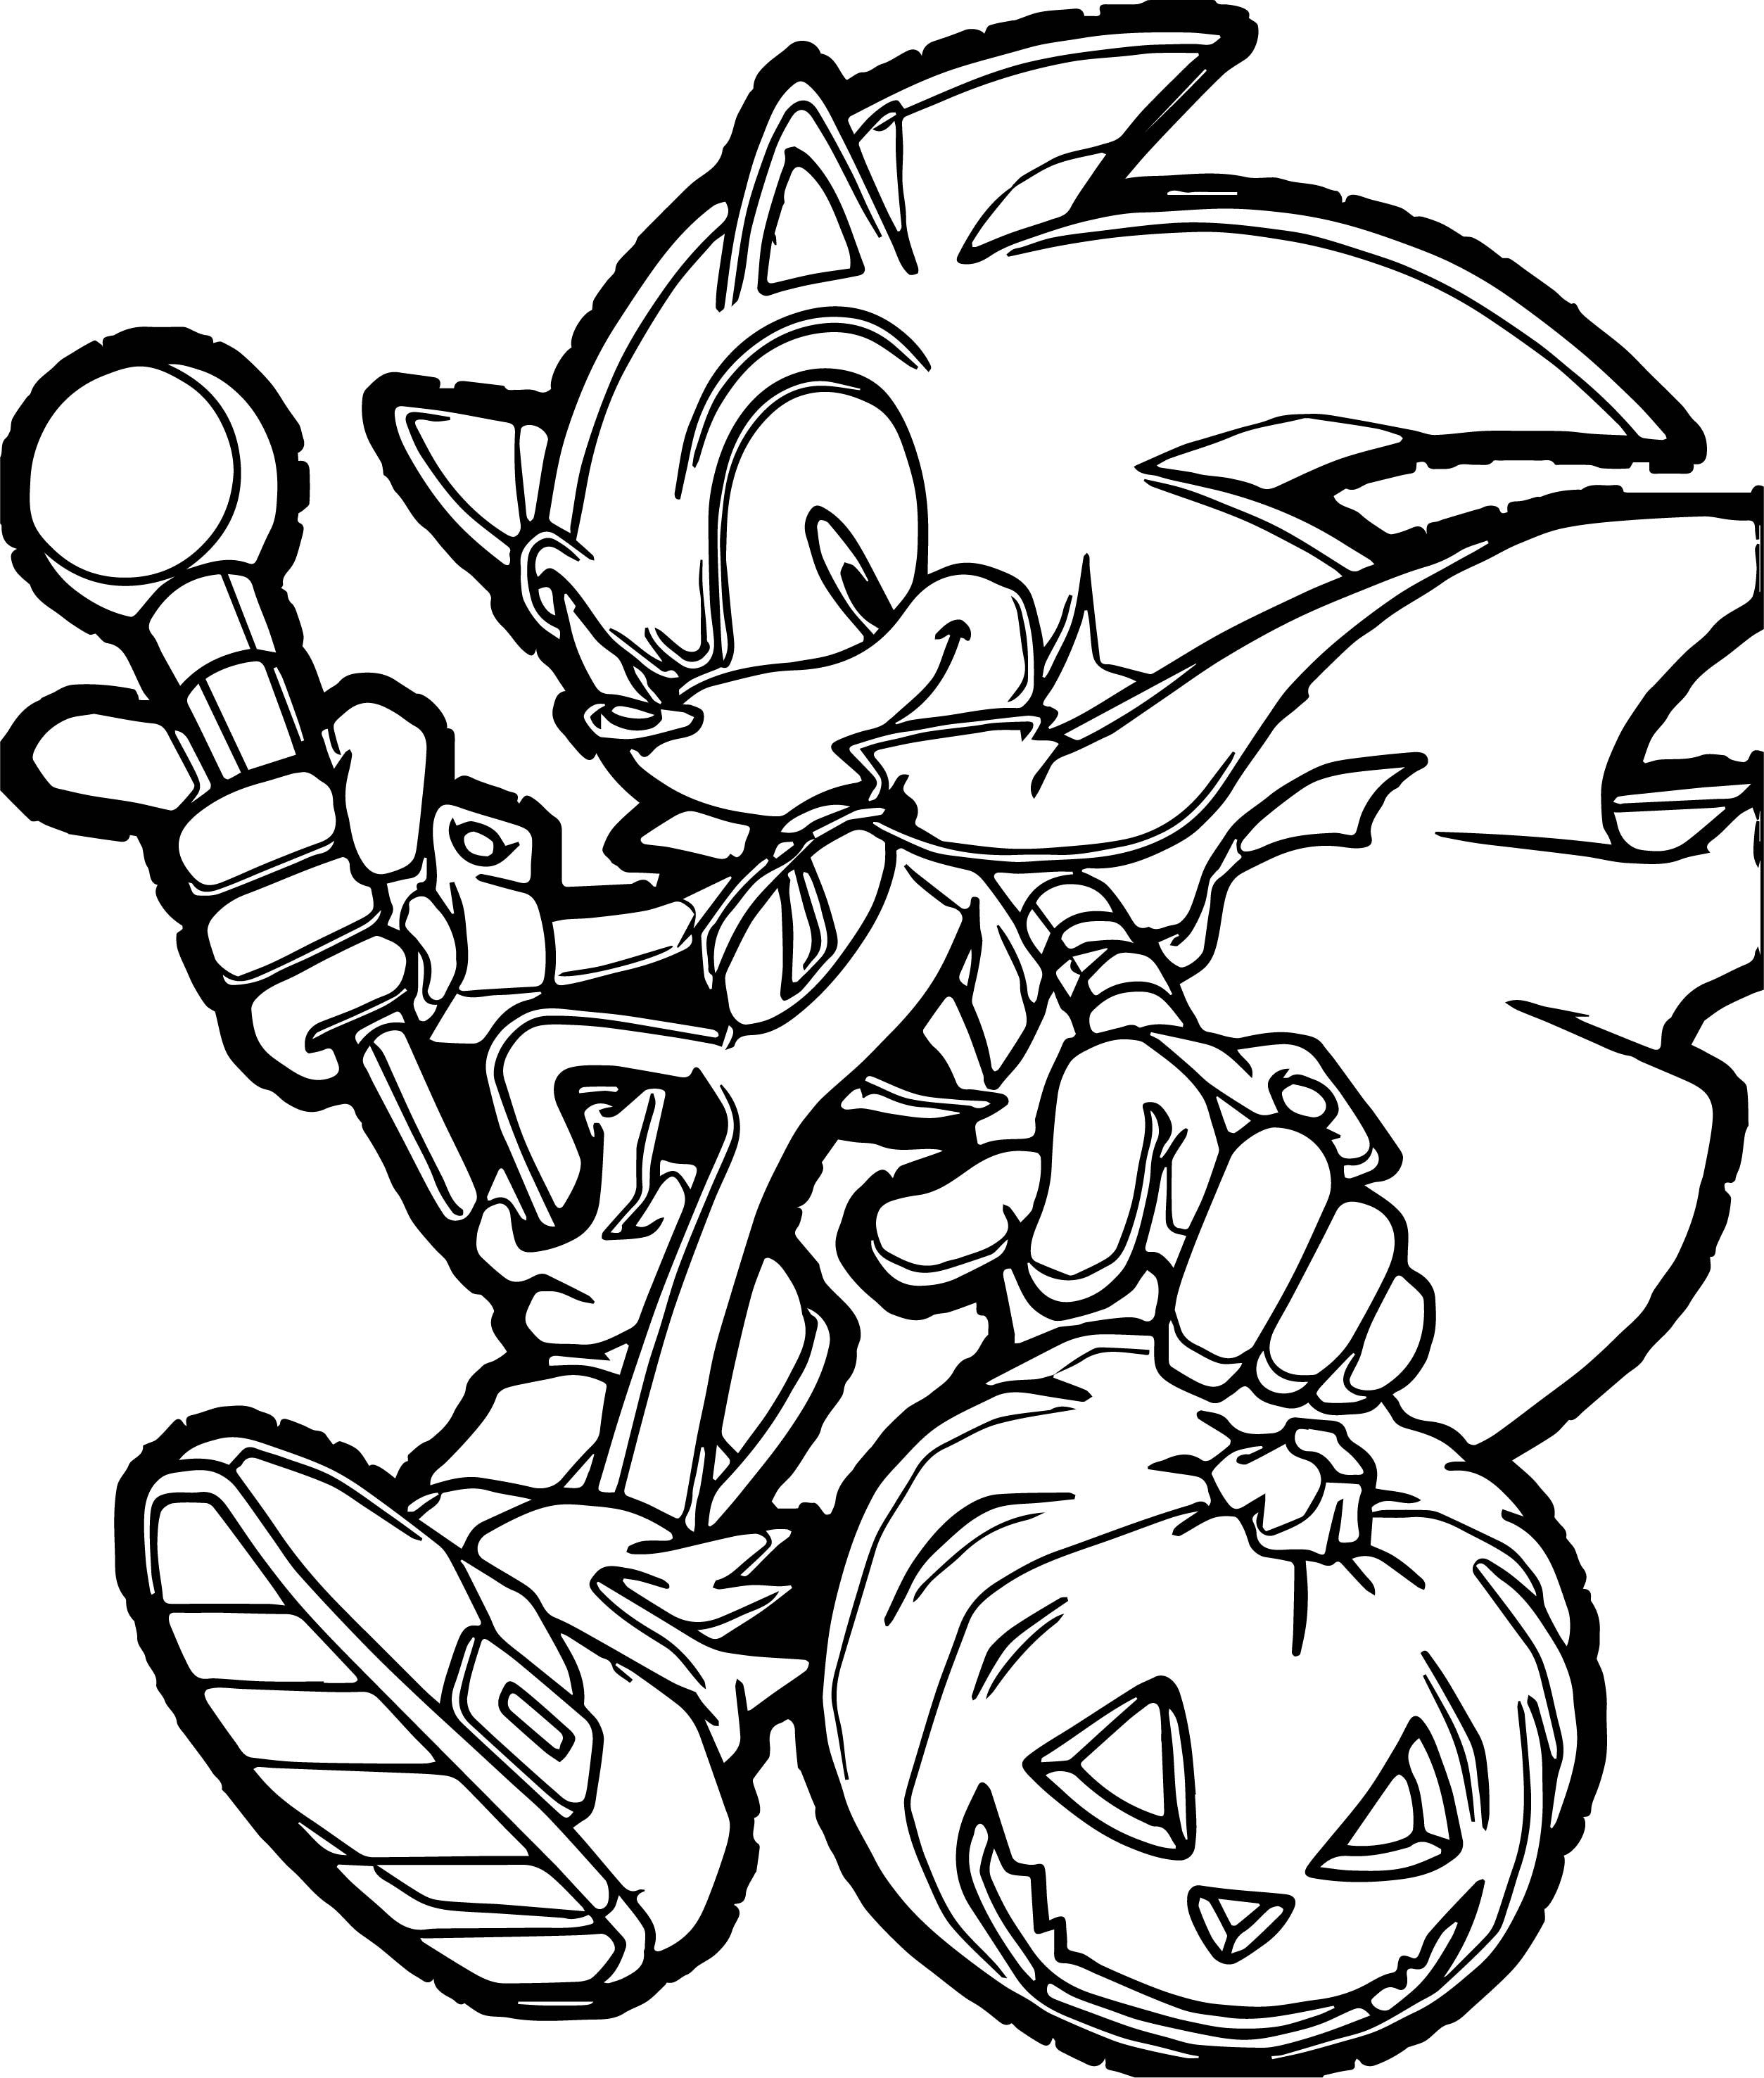 Cool Sonic The Hedgehog Halloween Pumpkin Coloring Page Pumpkin Coloring Pages Monster Coloring Pages Halloween Coloring Pages